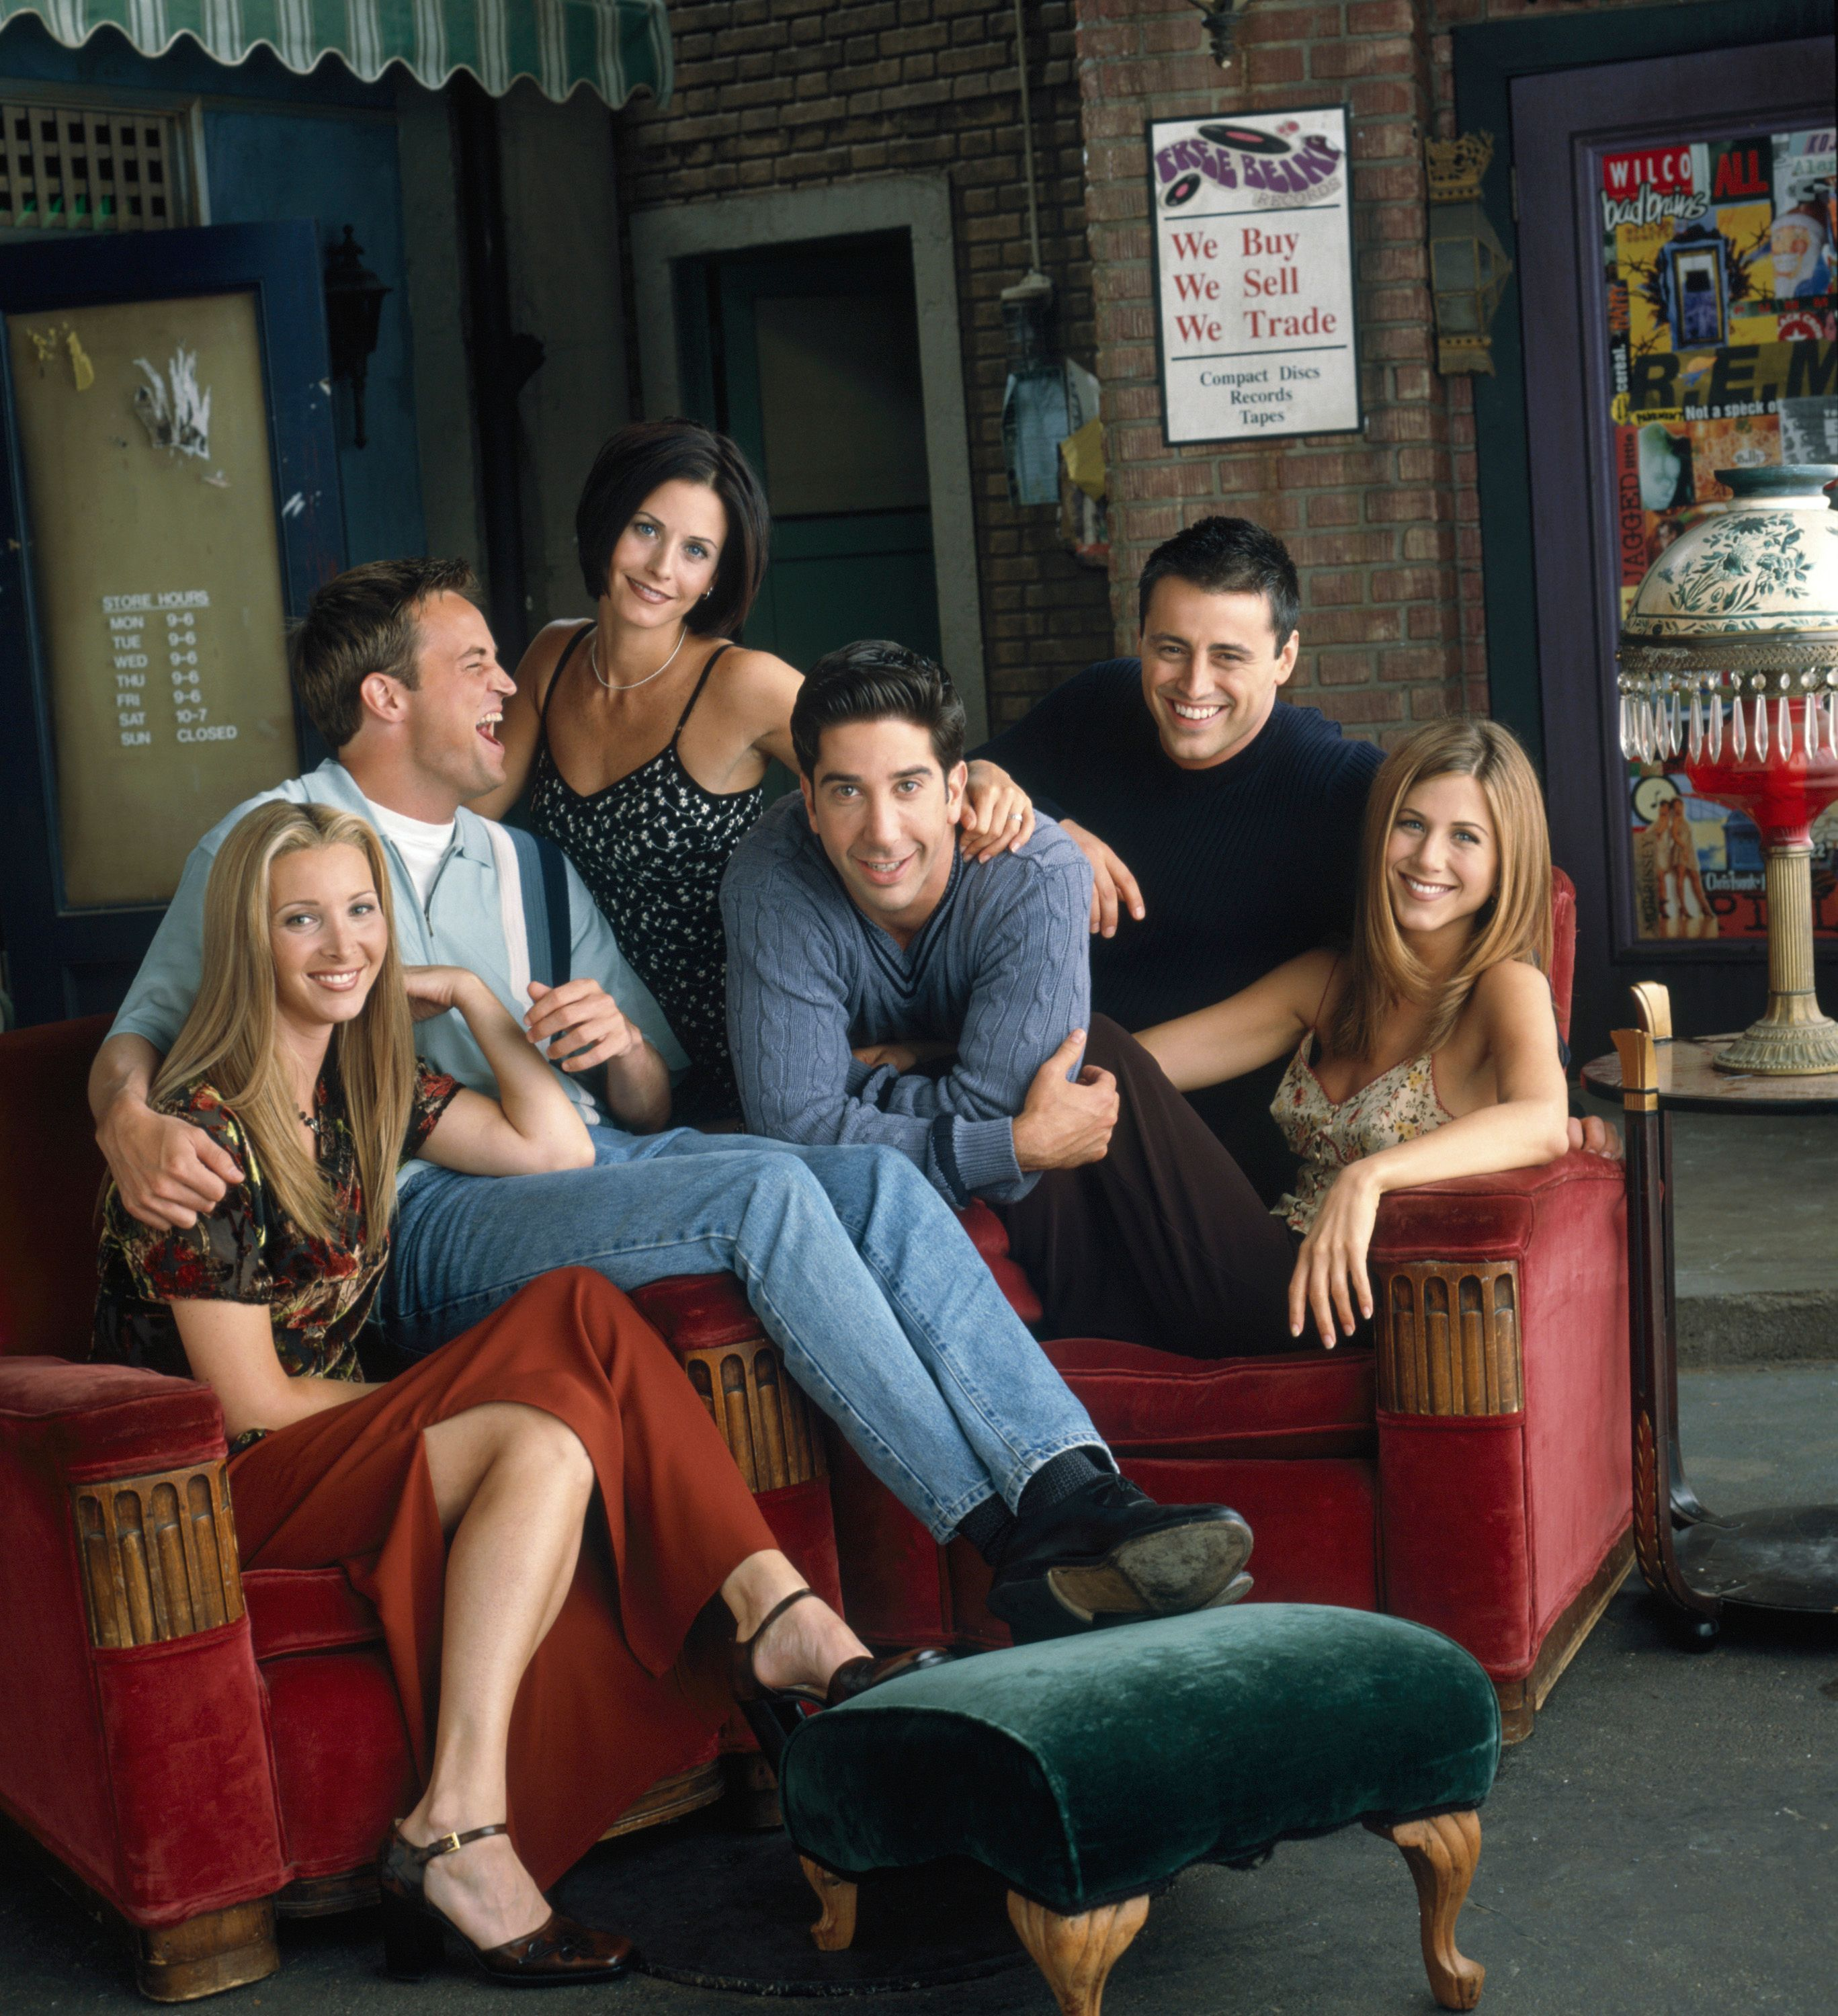 Friends were asked uncomfortable questions during their last reunion / Getty Images